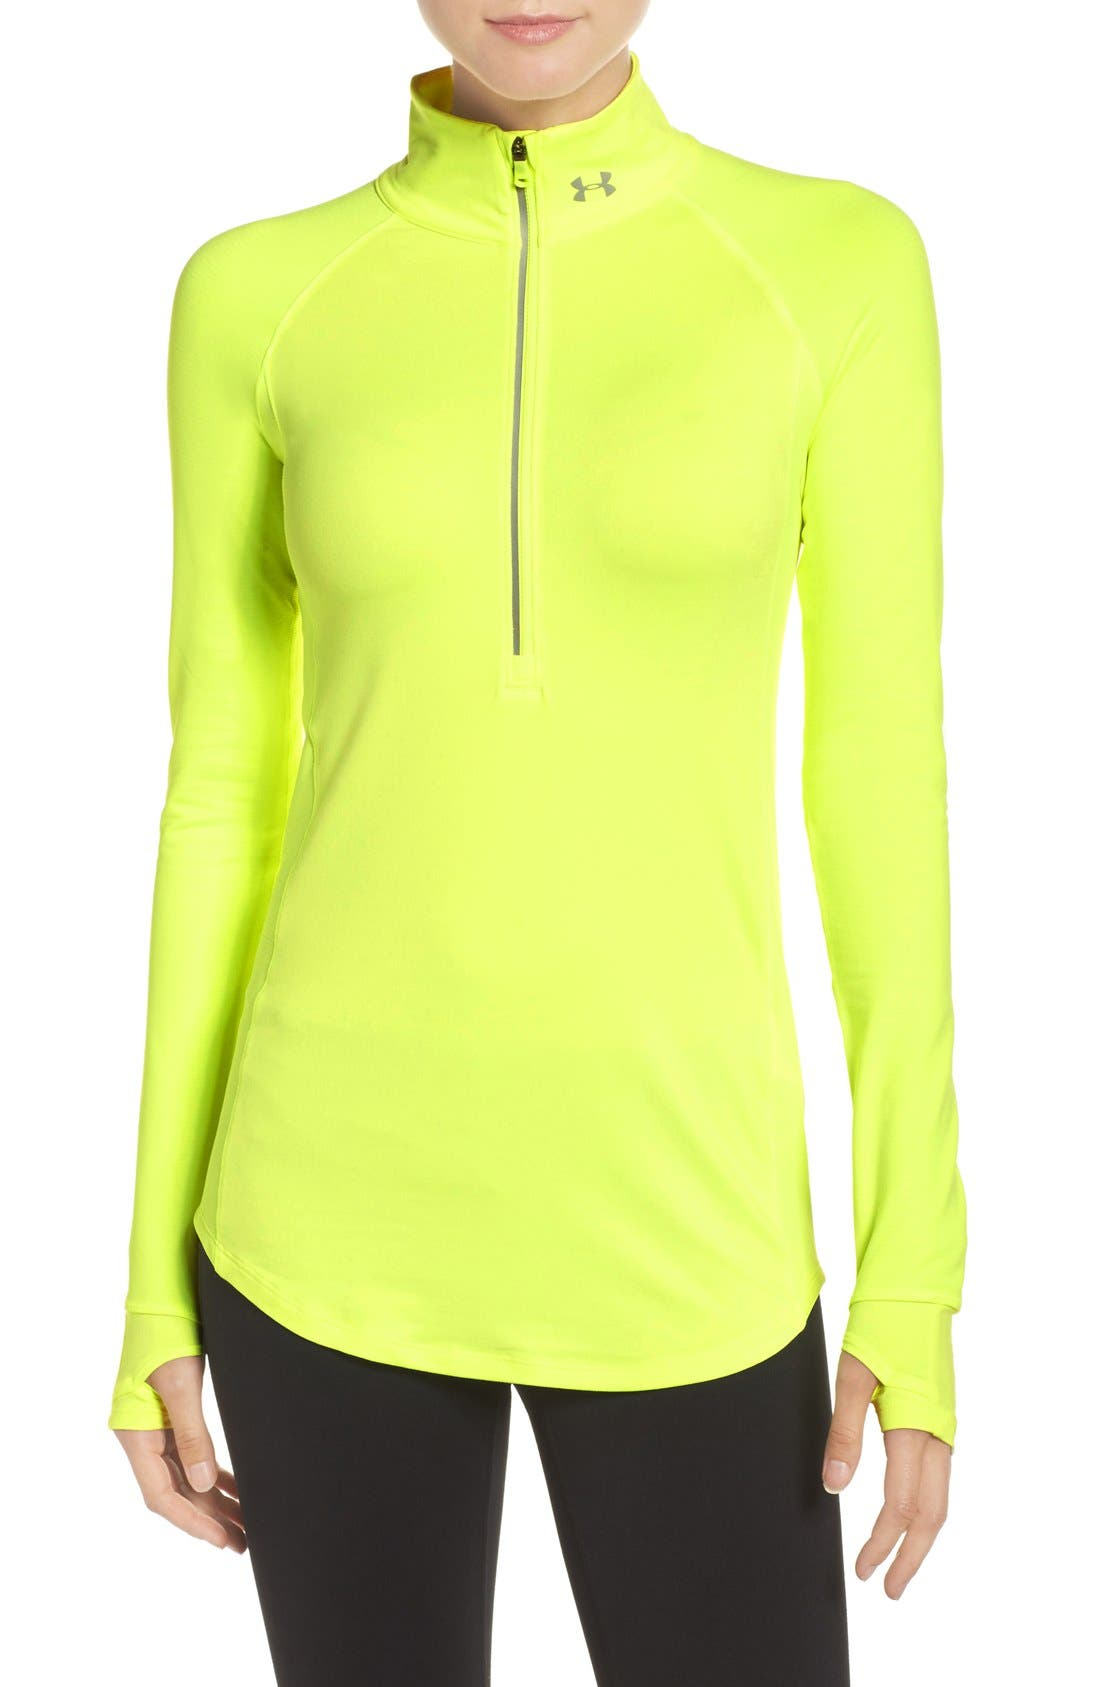 Main Image - Under Armour 'Layered Up' Water Resistant Half-Zip Top